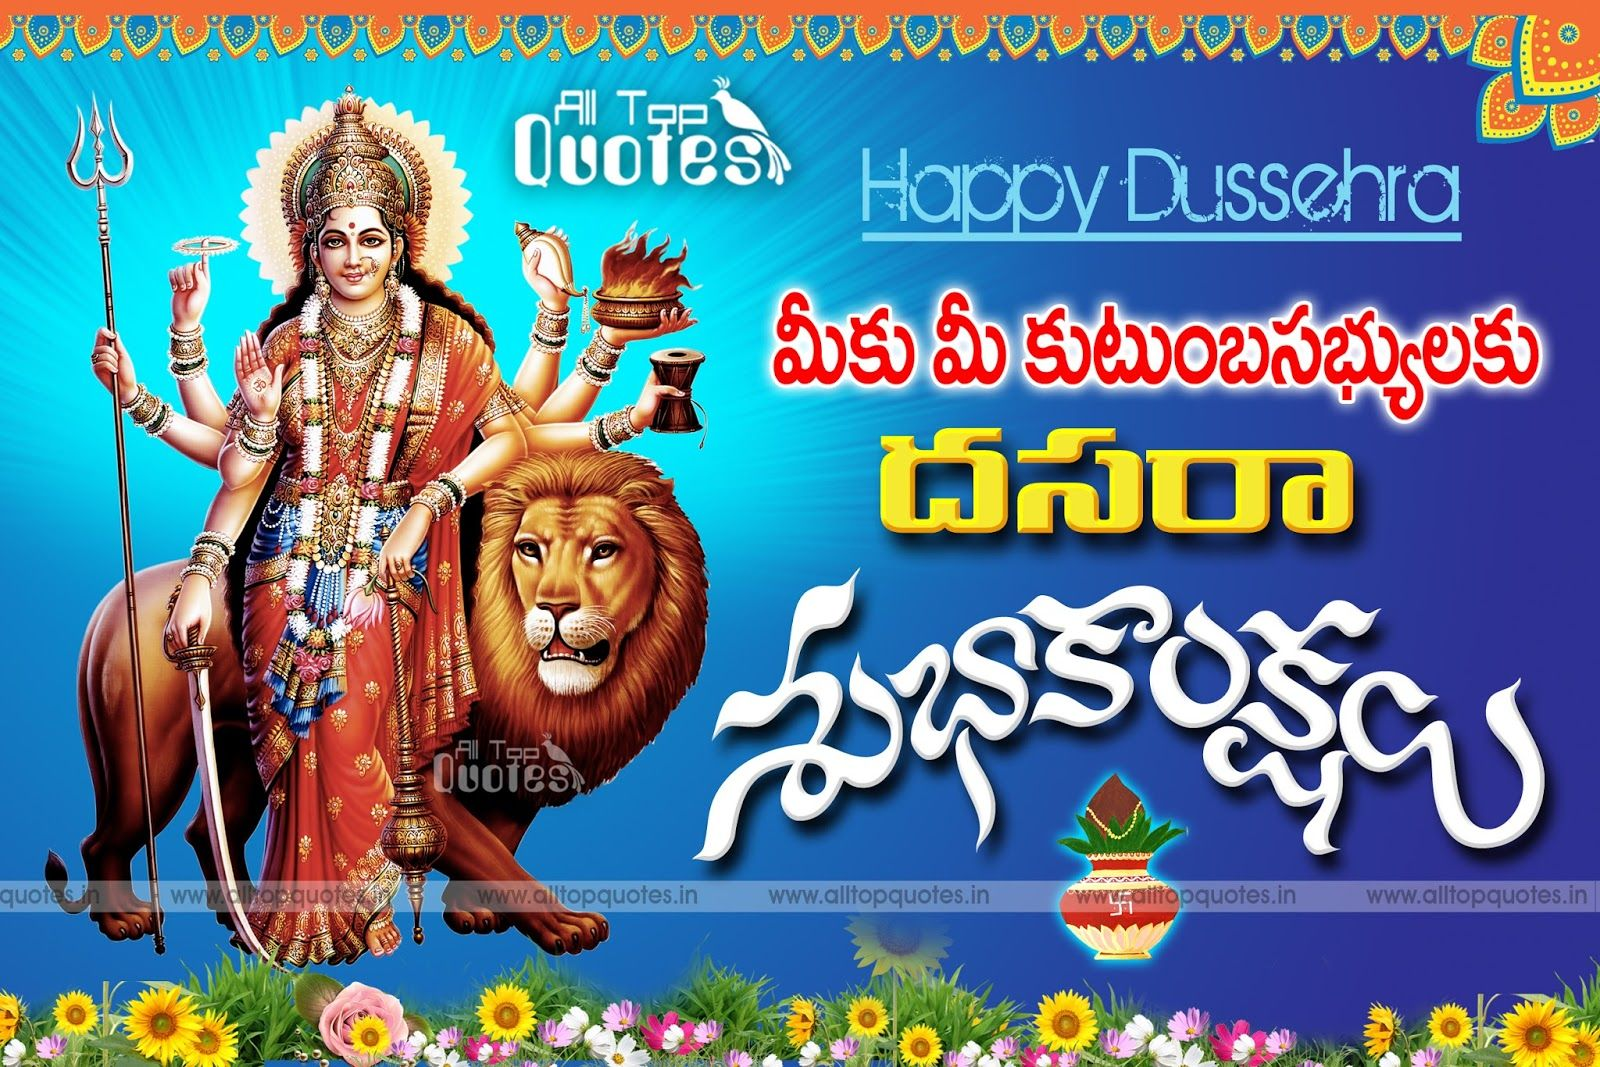 New happy dussehra telugu greetings and quotes hd wallpapers in new happy dussehra telugu greetings and quotes hd wallpapers in telugu font all top quotes telugu quotes english quotes hindi quotes m4hsunfo